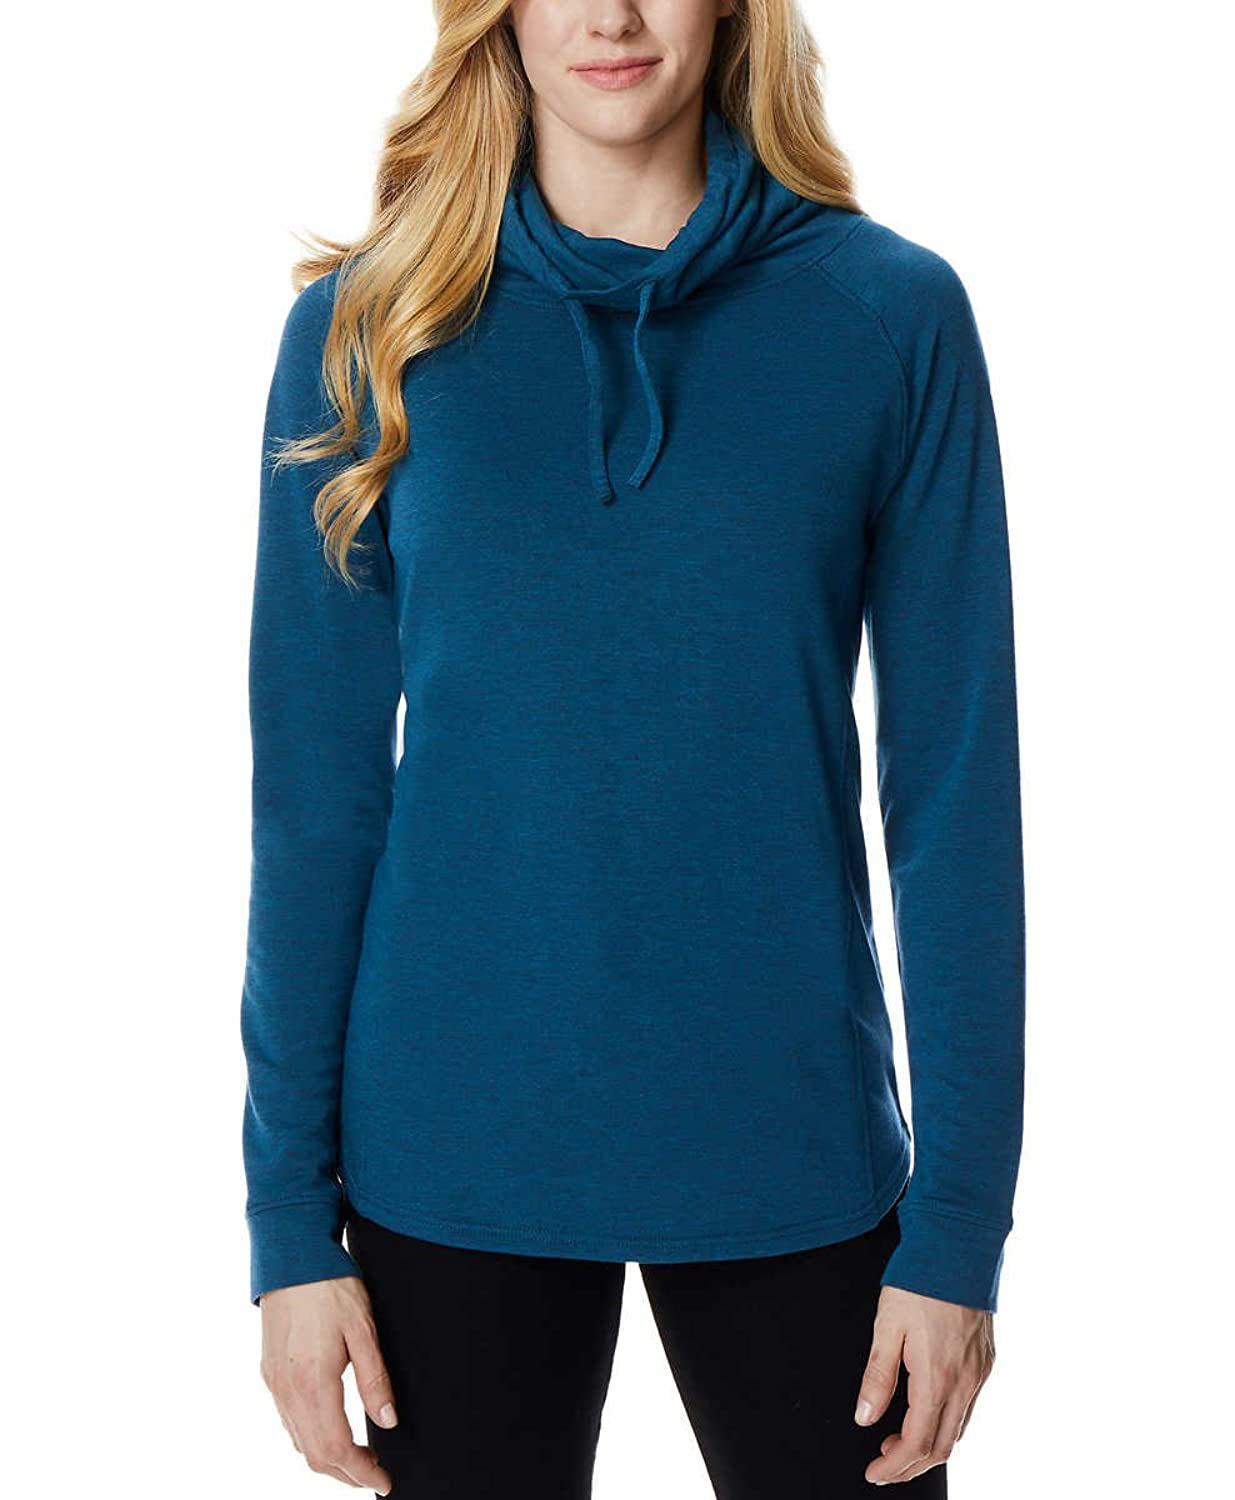 5f4a5cfe331 32 DEGREES Ladies' Funnel Neck Top